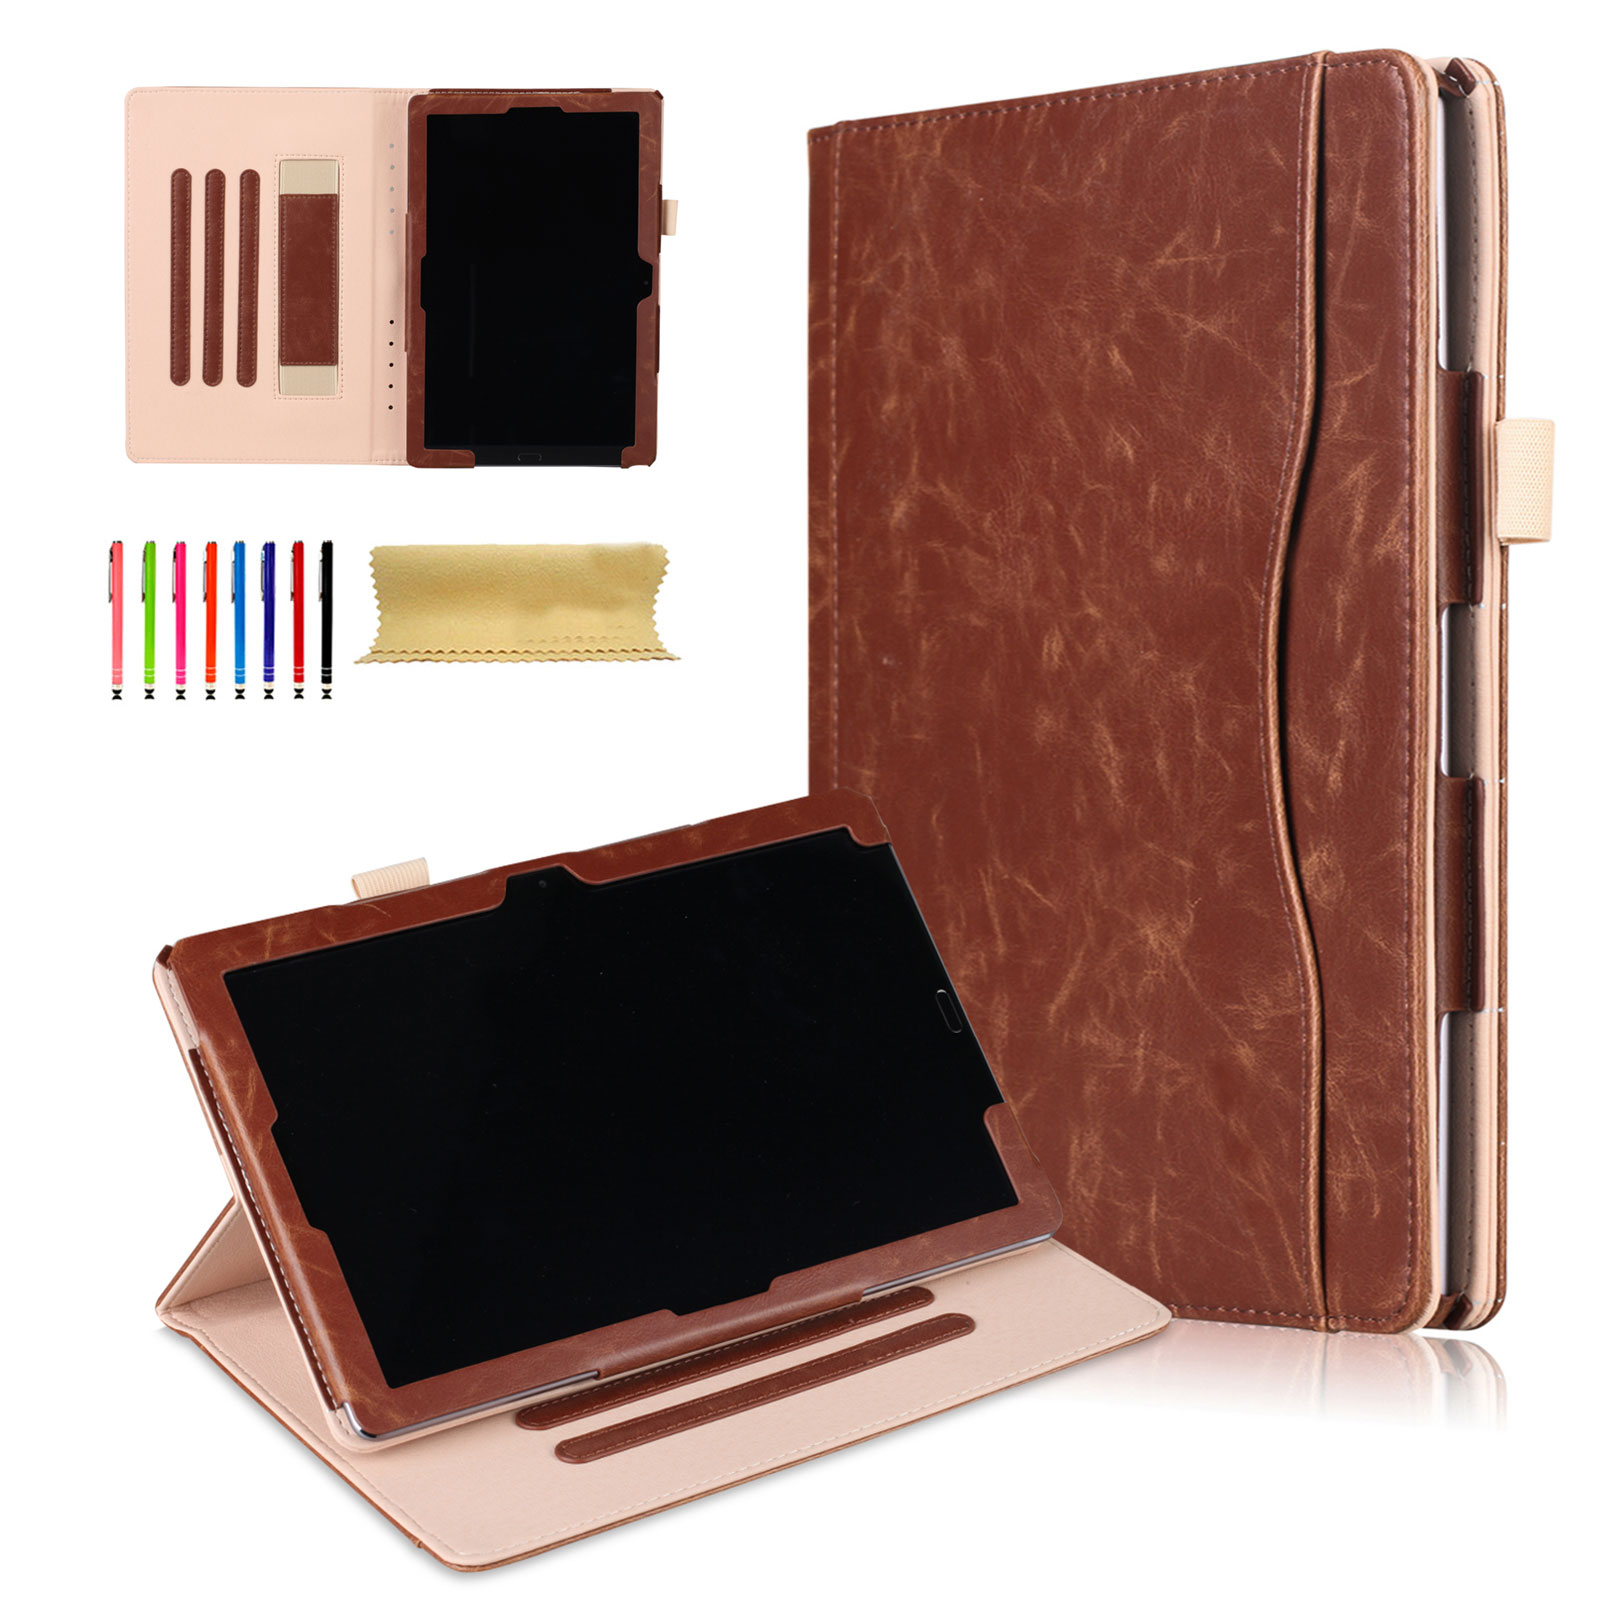 Huawei MediaPad M5 10.8-inch Tablet Case, Goodest Slim Shell Book Style Folio Flip Stand Cover Case with Auto Wake/ Sleep, Document Slots for Huawei MediaPad M5 10.8 Inch Tablet, Brown